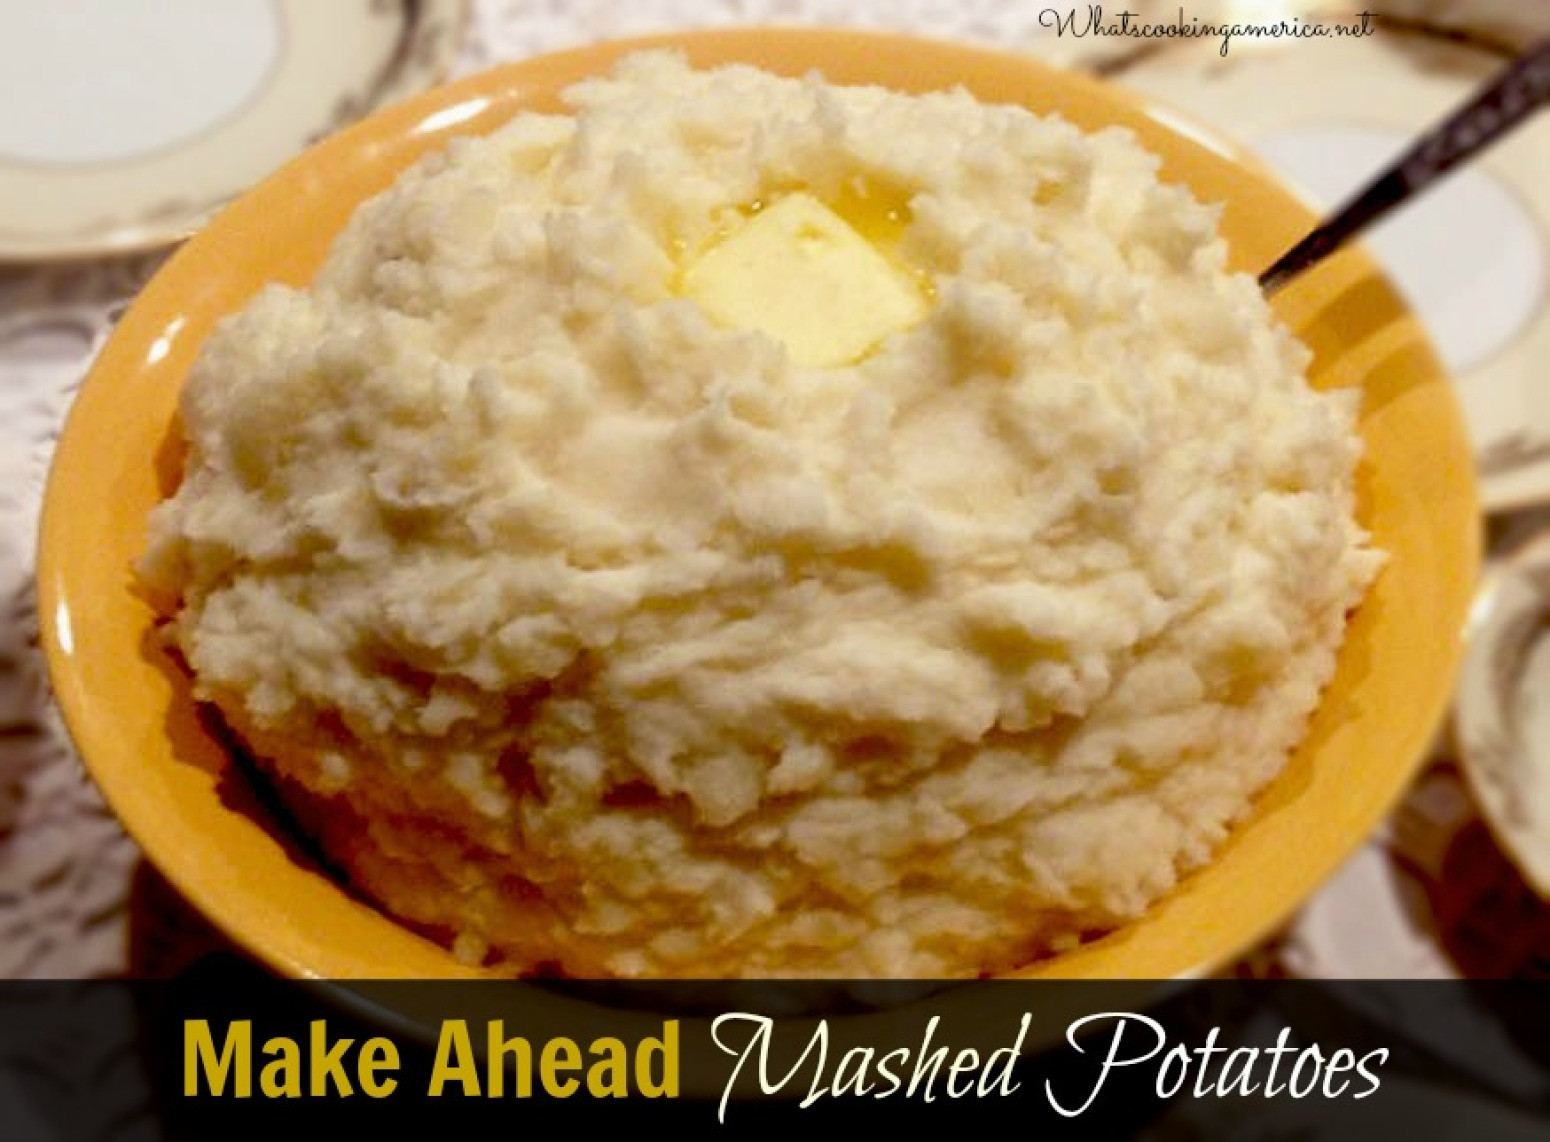 Make Ahead Mashed Potatoes Thanksgiving  Best MakeAhead Mashed Potato Recipe Perfect Mashed Potato